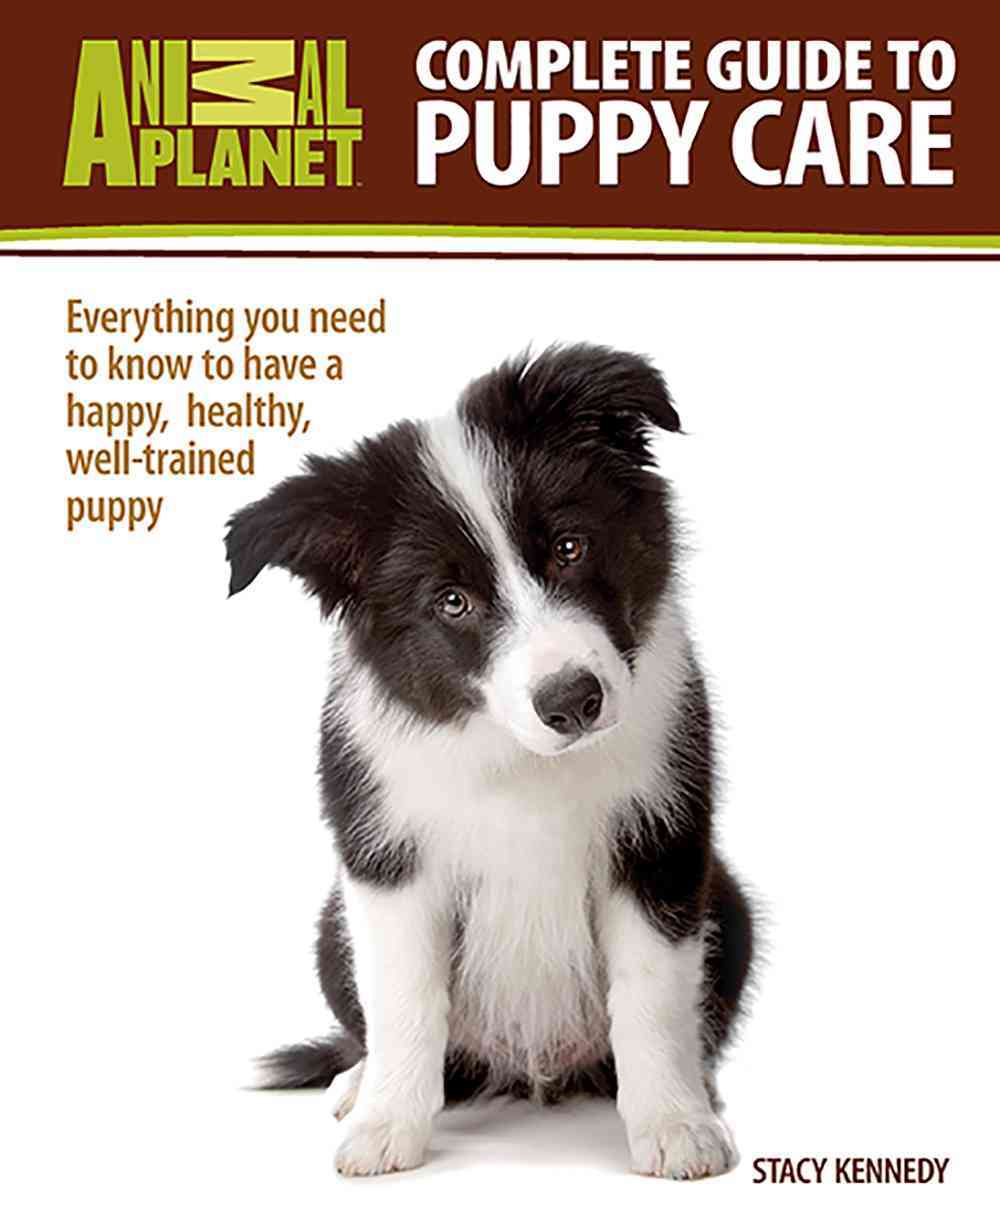 Complete Guide to Puppy Care: Everything You Need to Know to Have a Happy, Healthy, Well-Trained Puppy (Hardcover)